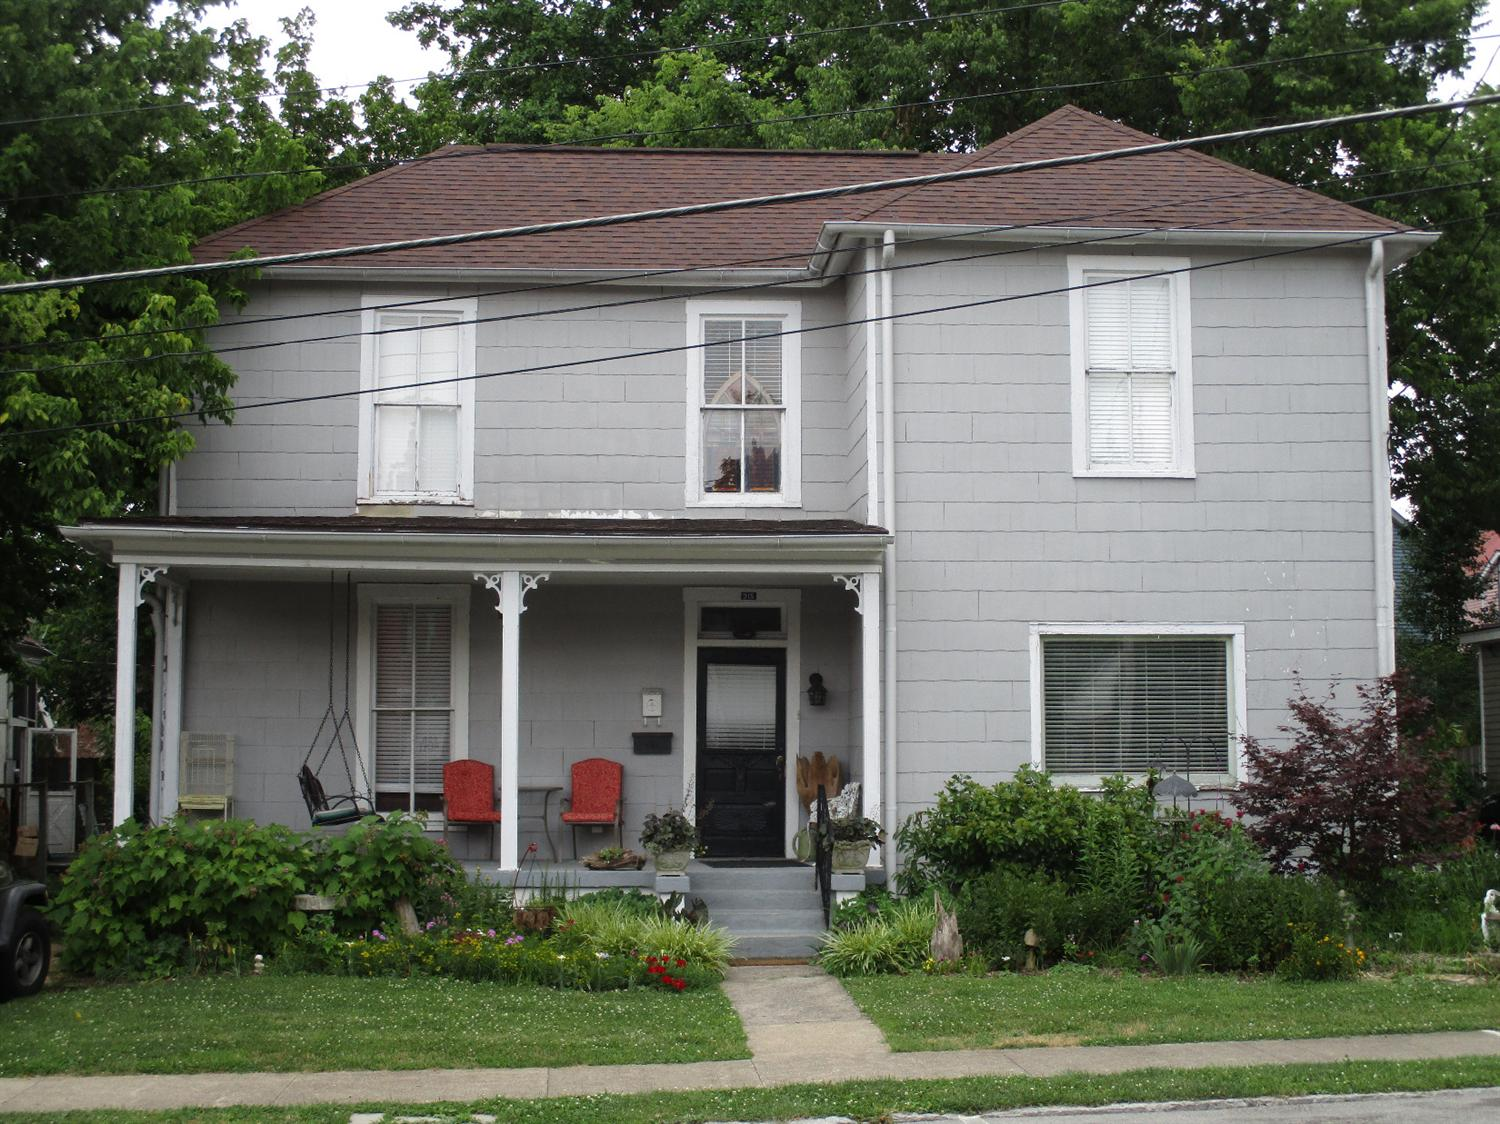 Home For Sale at 300 Washington St, Frankfort, KY 40601